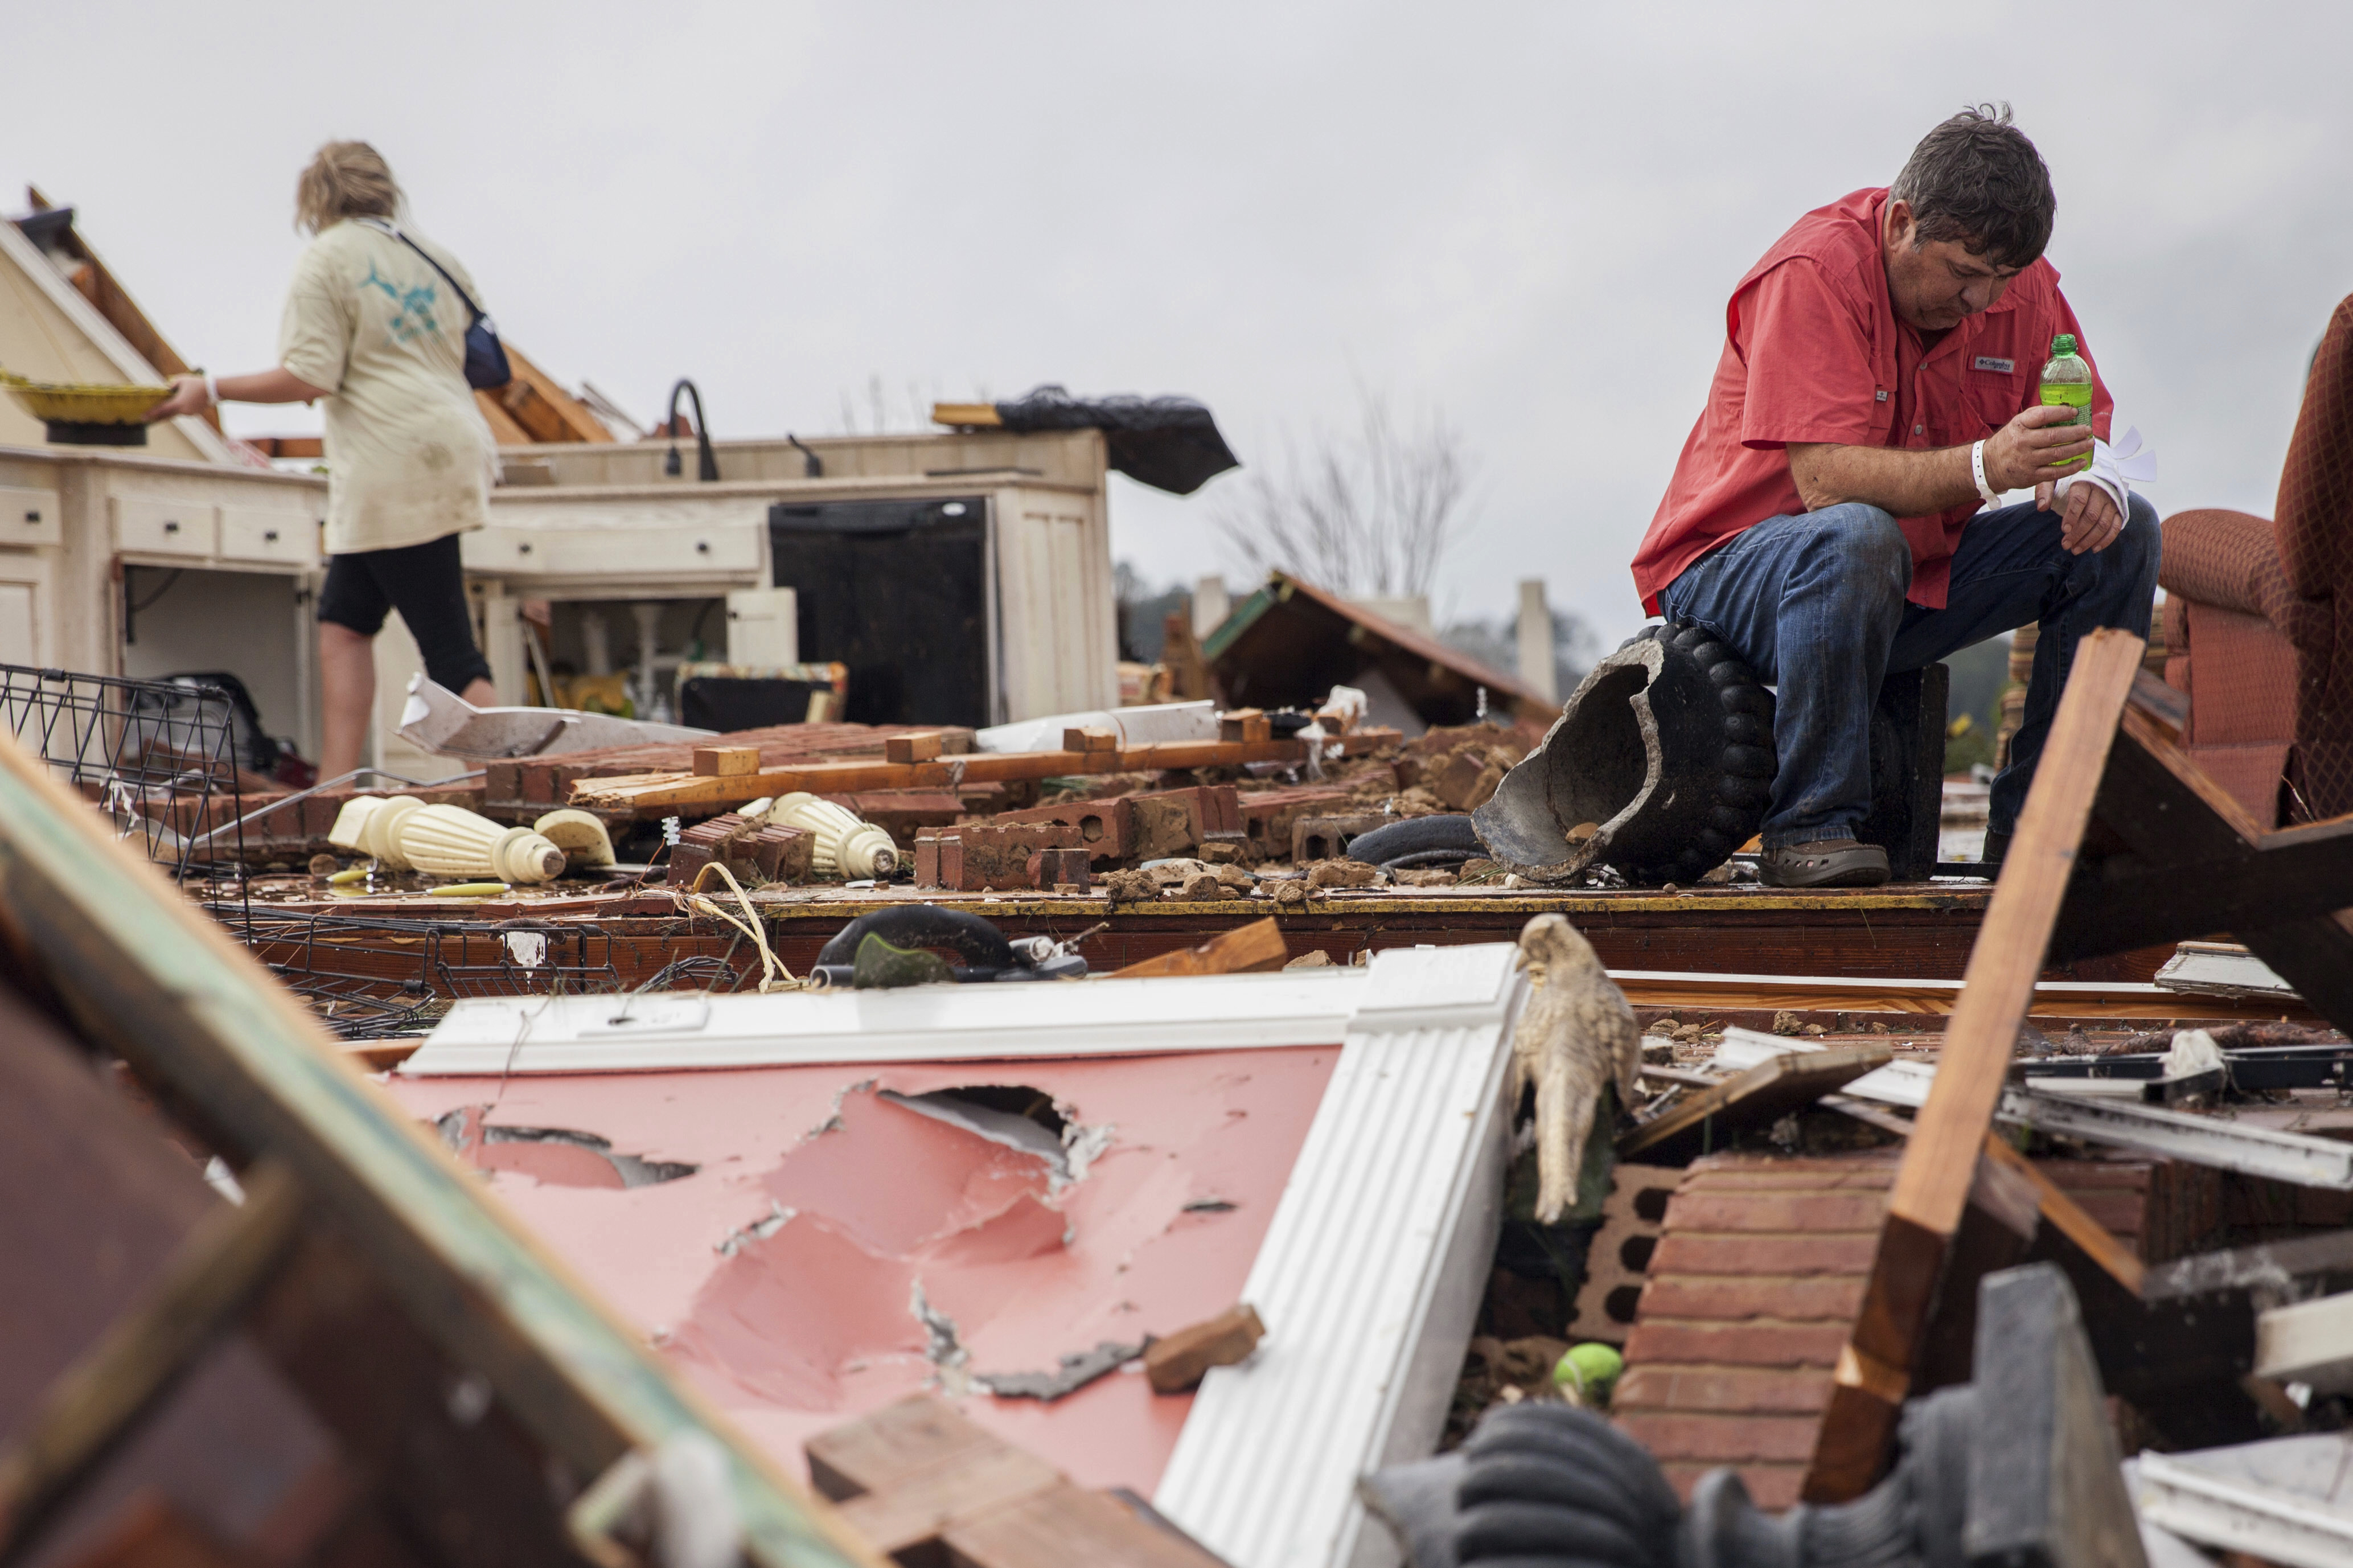 Jeff Bullard sits in what used to be the foyer of his home as his daughter, Jenny Bullard, looks through debris at their home that was damaged by a tornado in Ga., on Jan. 22, 2017, in Adel. (AP Photo/Branden Camp)